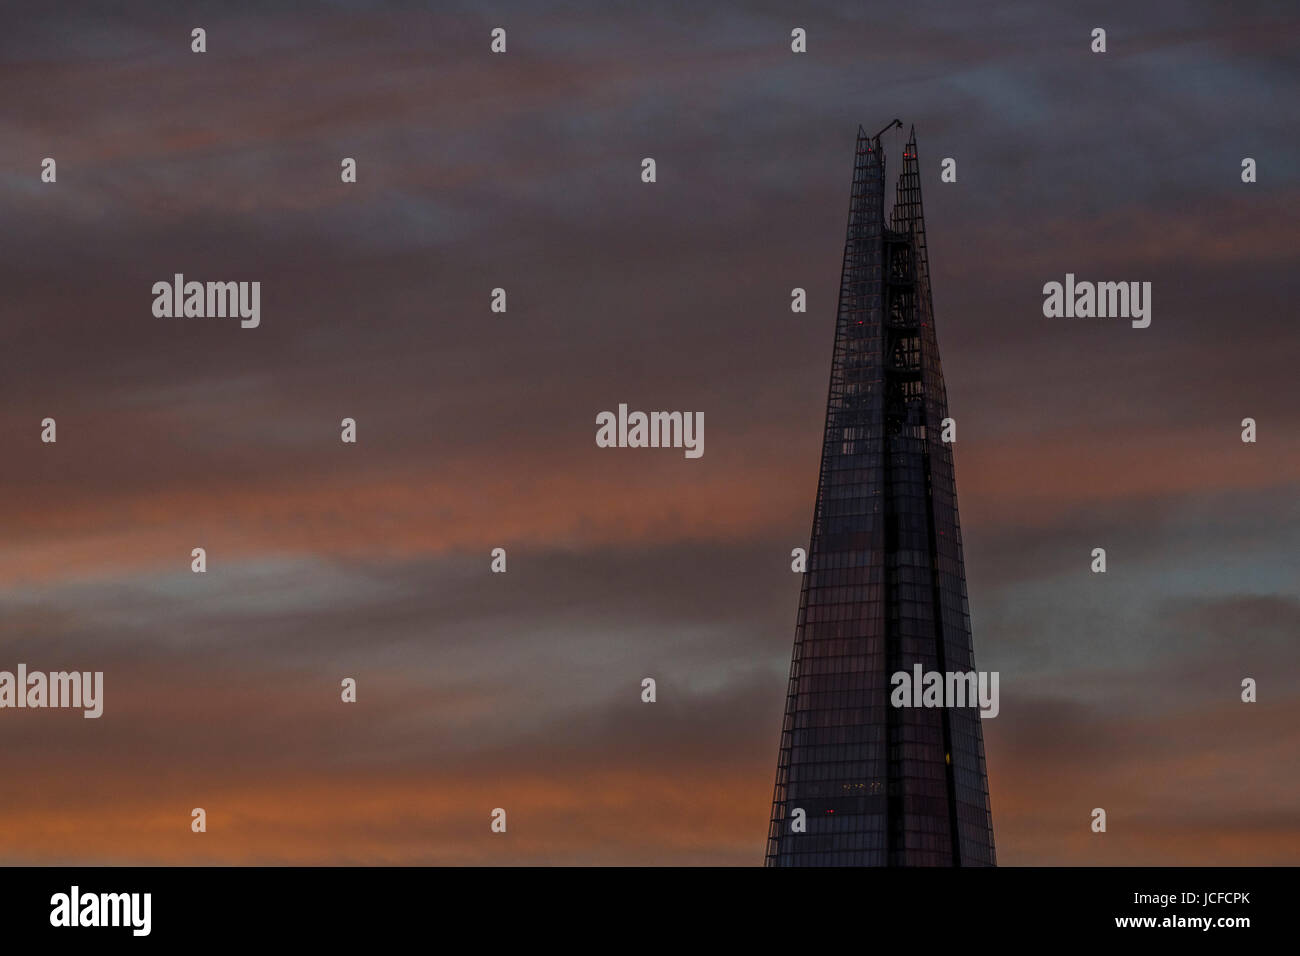 London, UK. 15th June, 2017. The Shard. The sun sets over central London. London, 15 Jun 2017 Credit: Guy Bell/Alamy Stock Photo